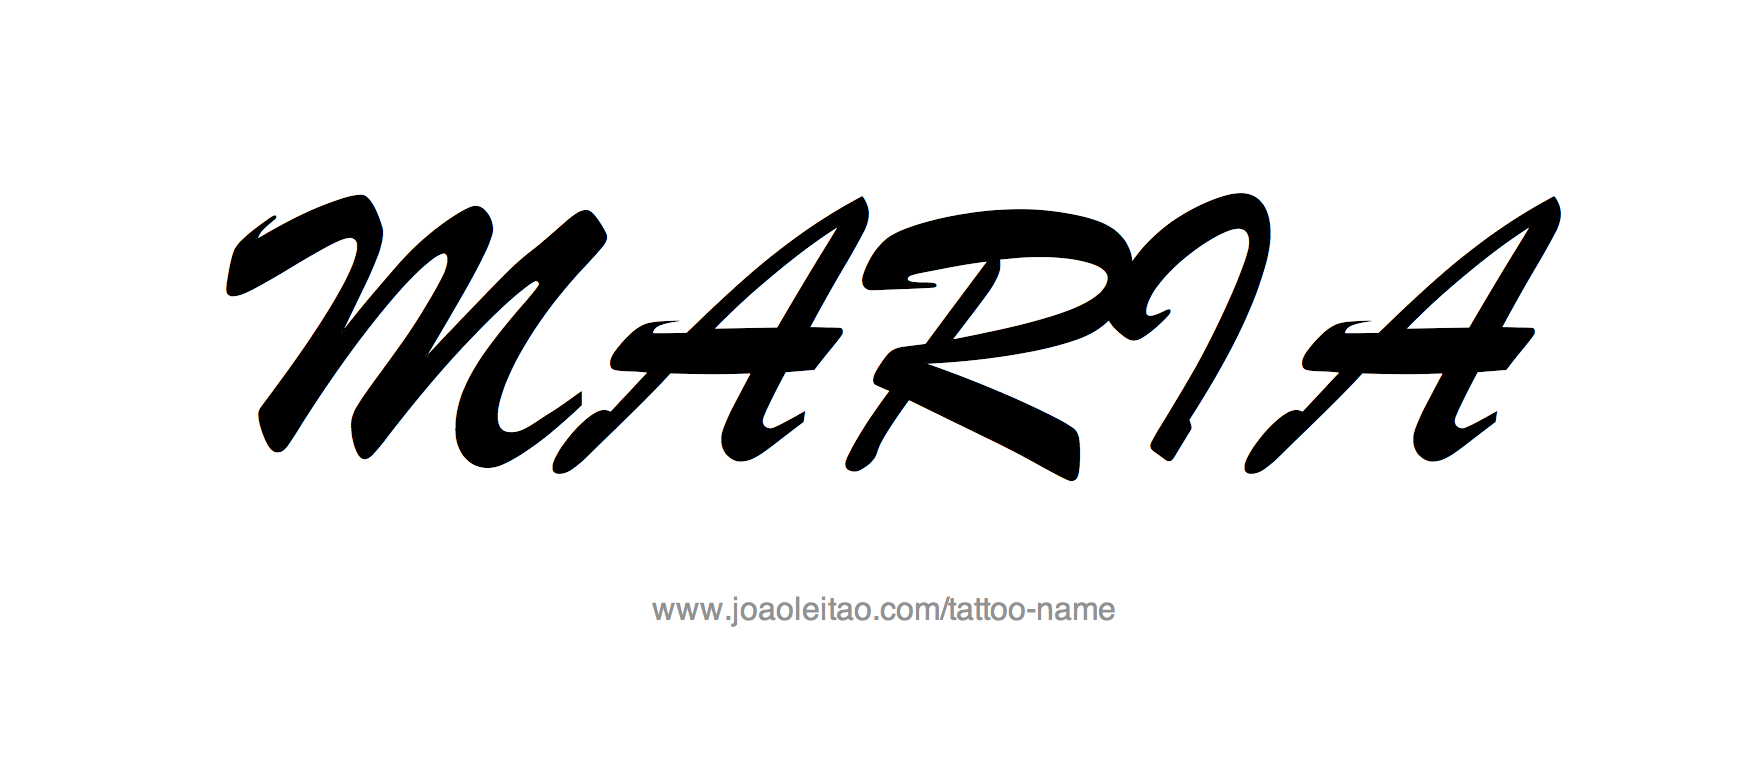 Tattoo Design Name Maria